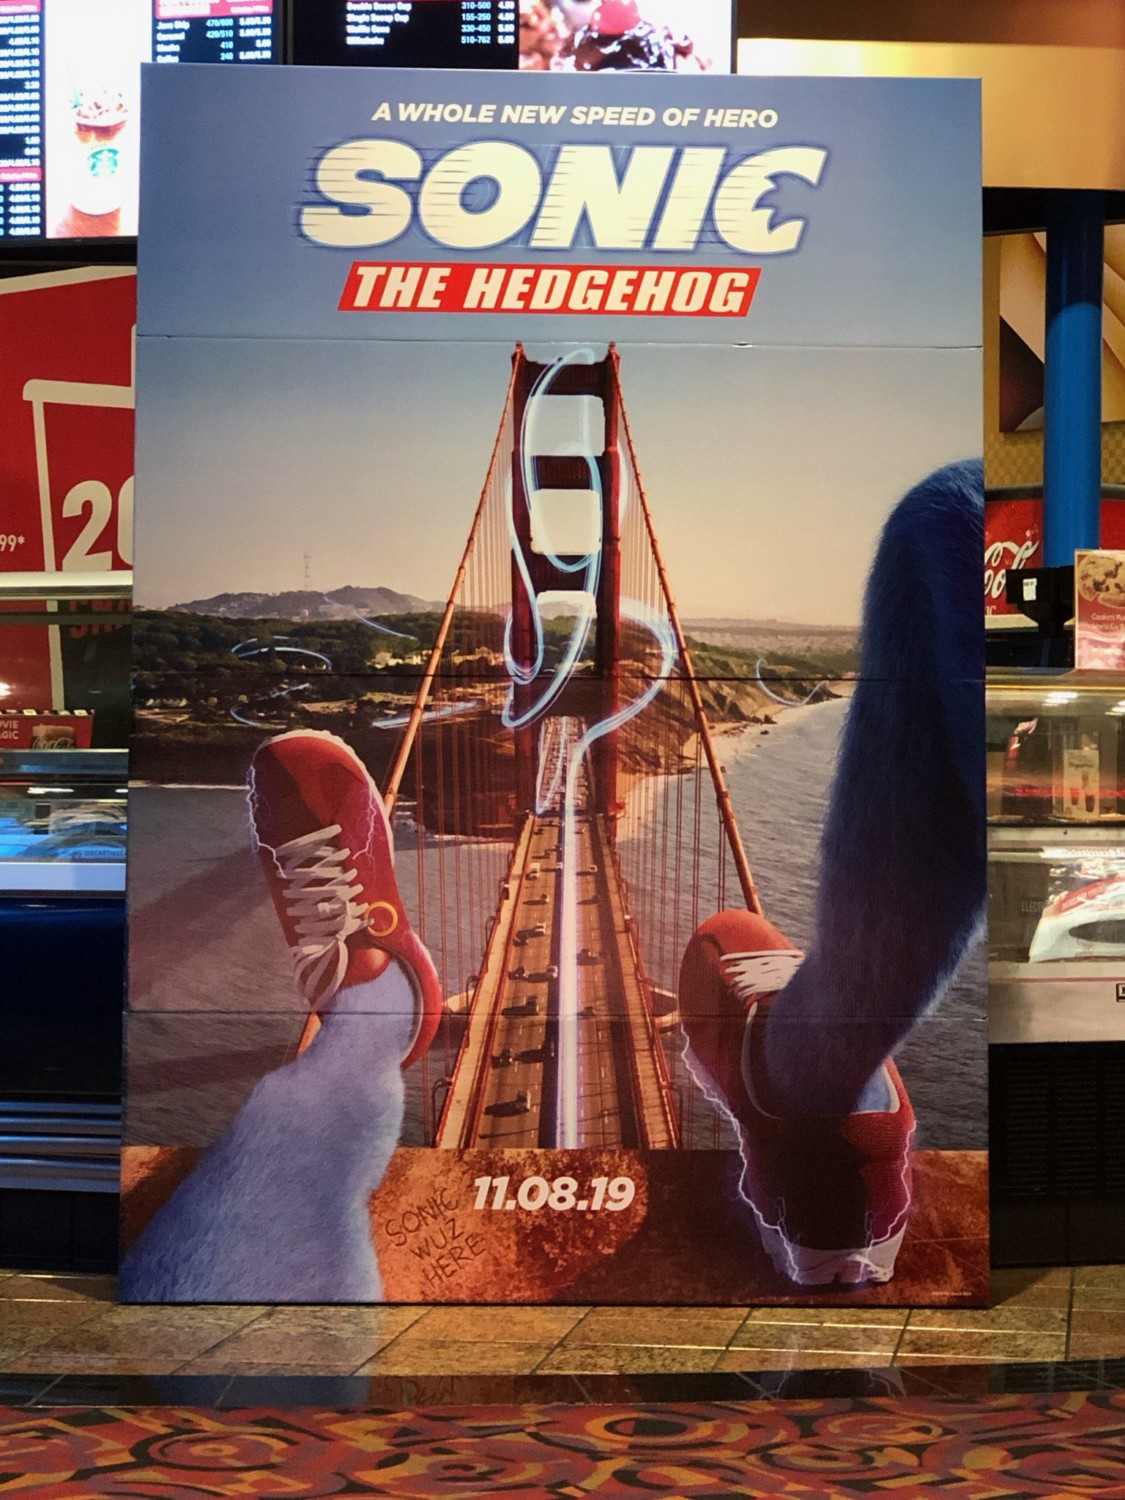 new poster for sonic the hedgehog movie apparently spotted at a